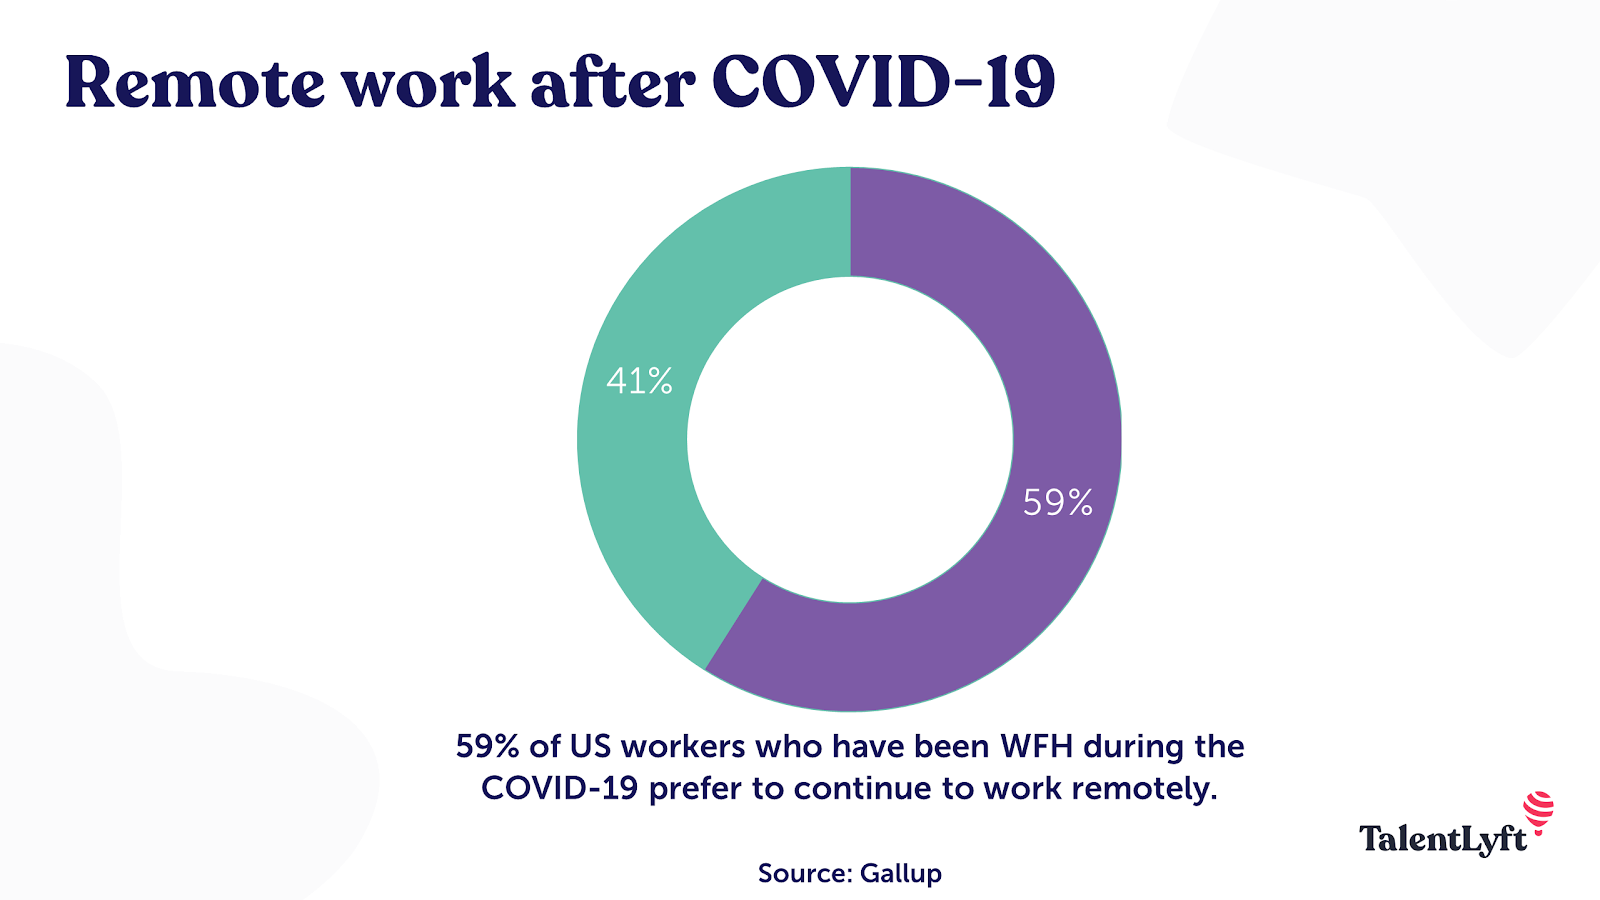 Remote work sfter COVID-19: How many people want to keep working remotely?